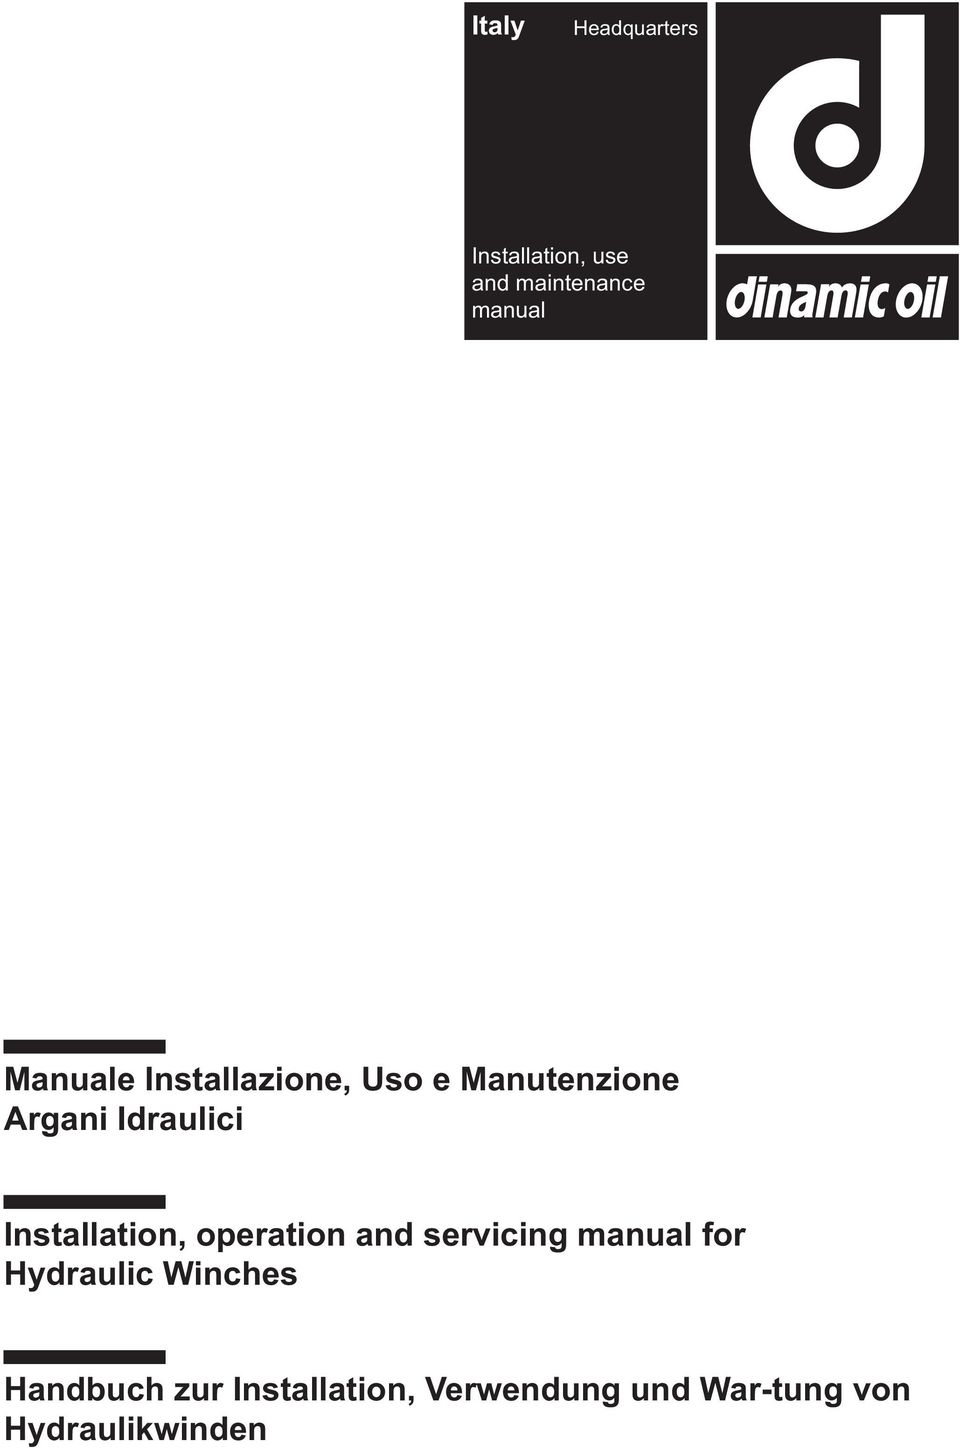 Installation, operation and servicing manual for Hydraulic